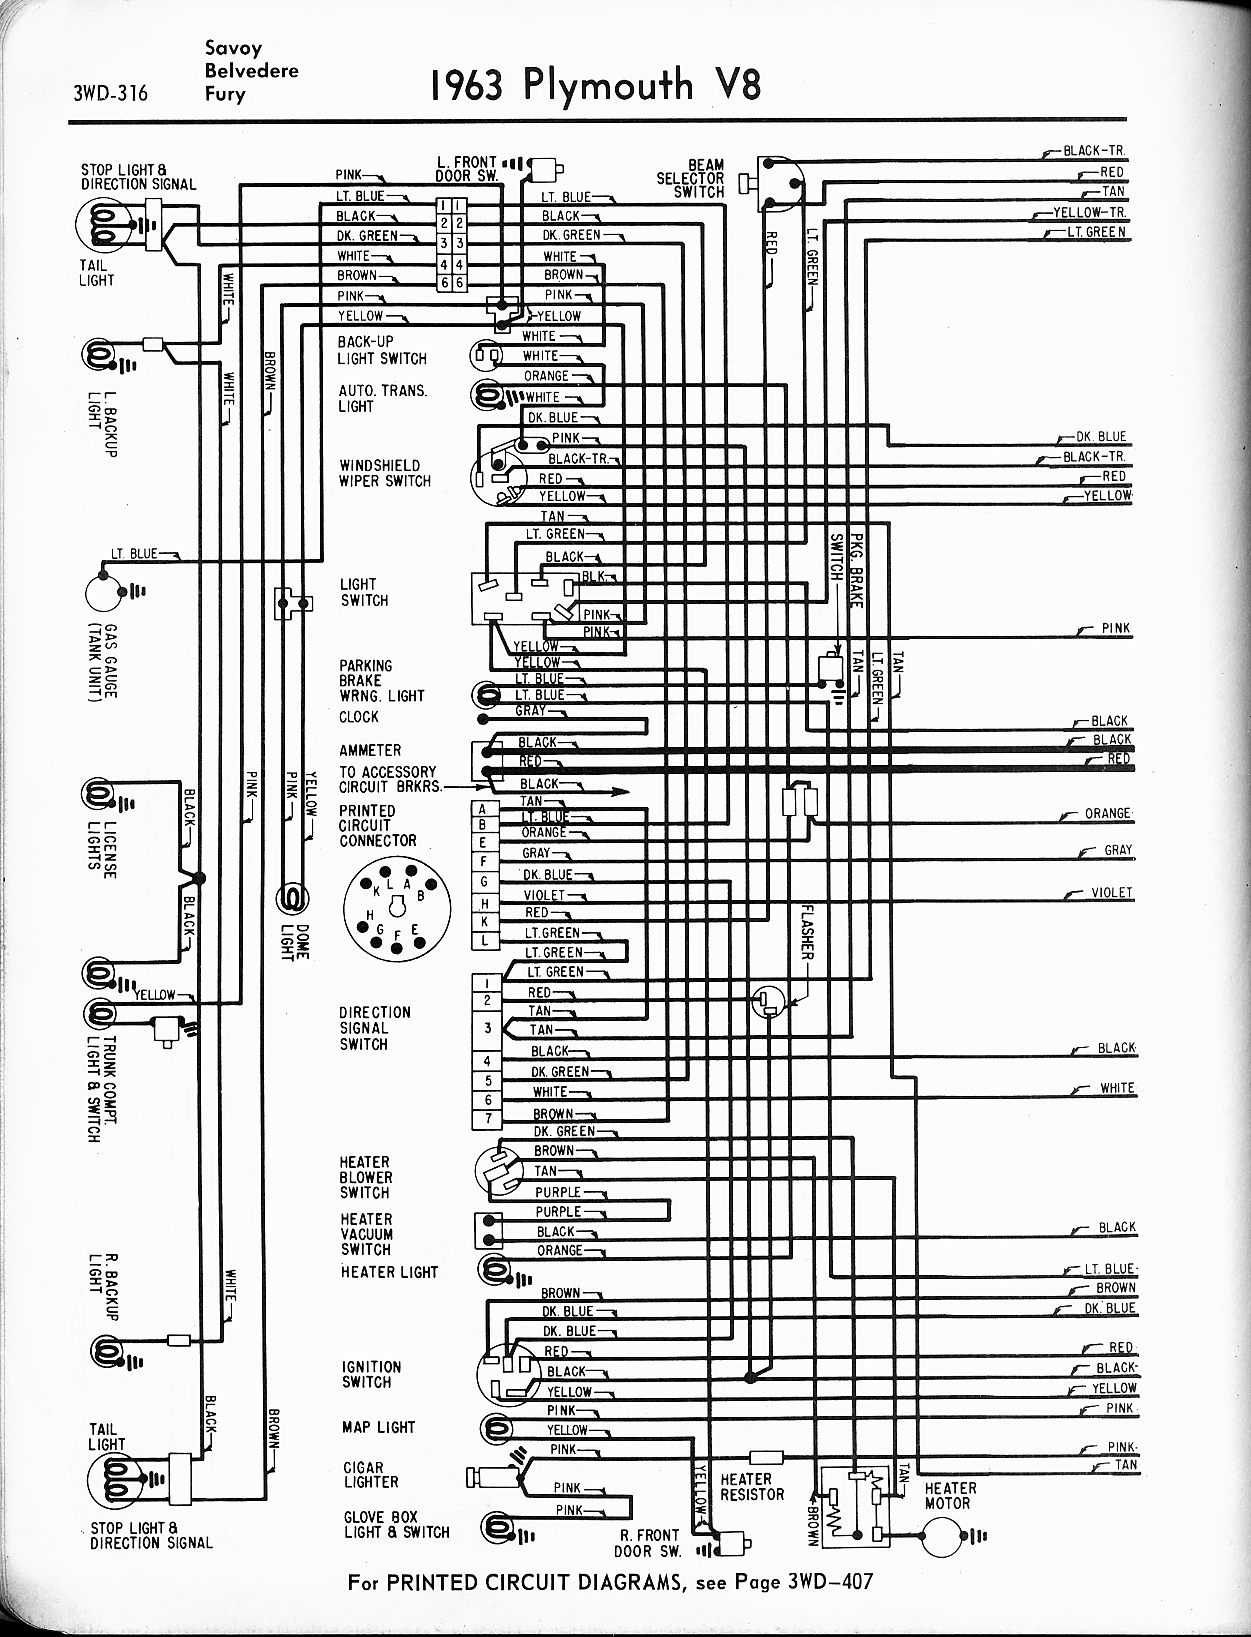 2000 Pontiac Bonneville Wiring Diagram Trusted 1992 Grand Am Engine Schematic Schematics House Symbols U2022 1997